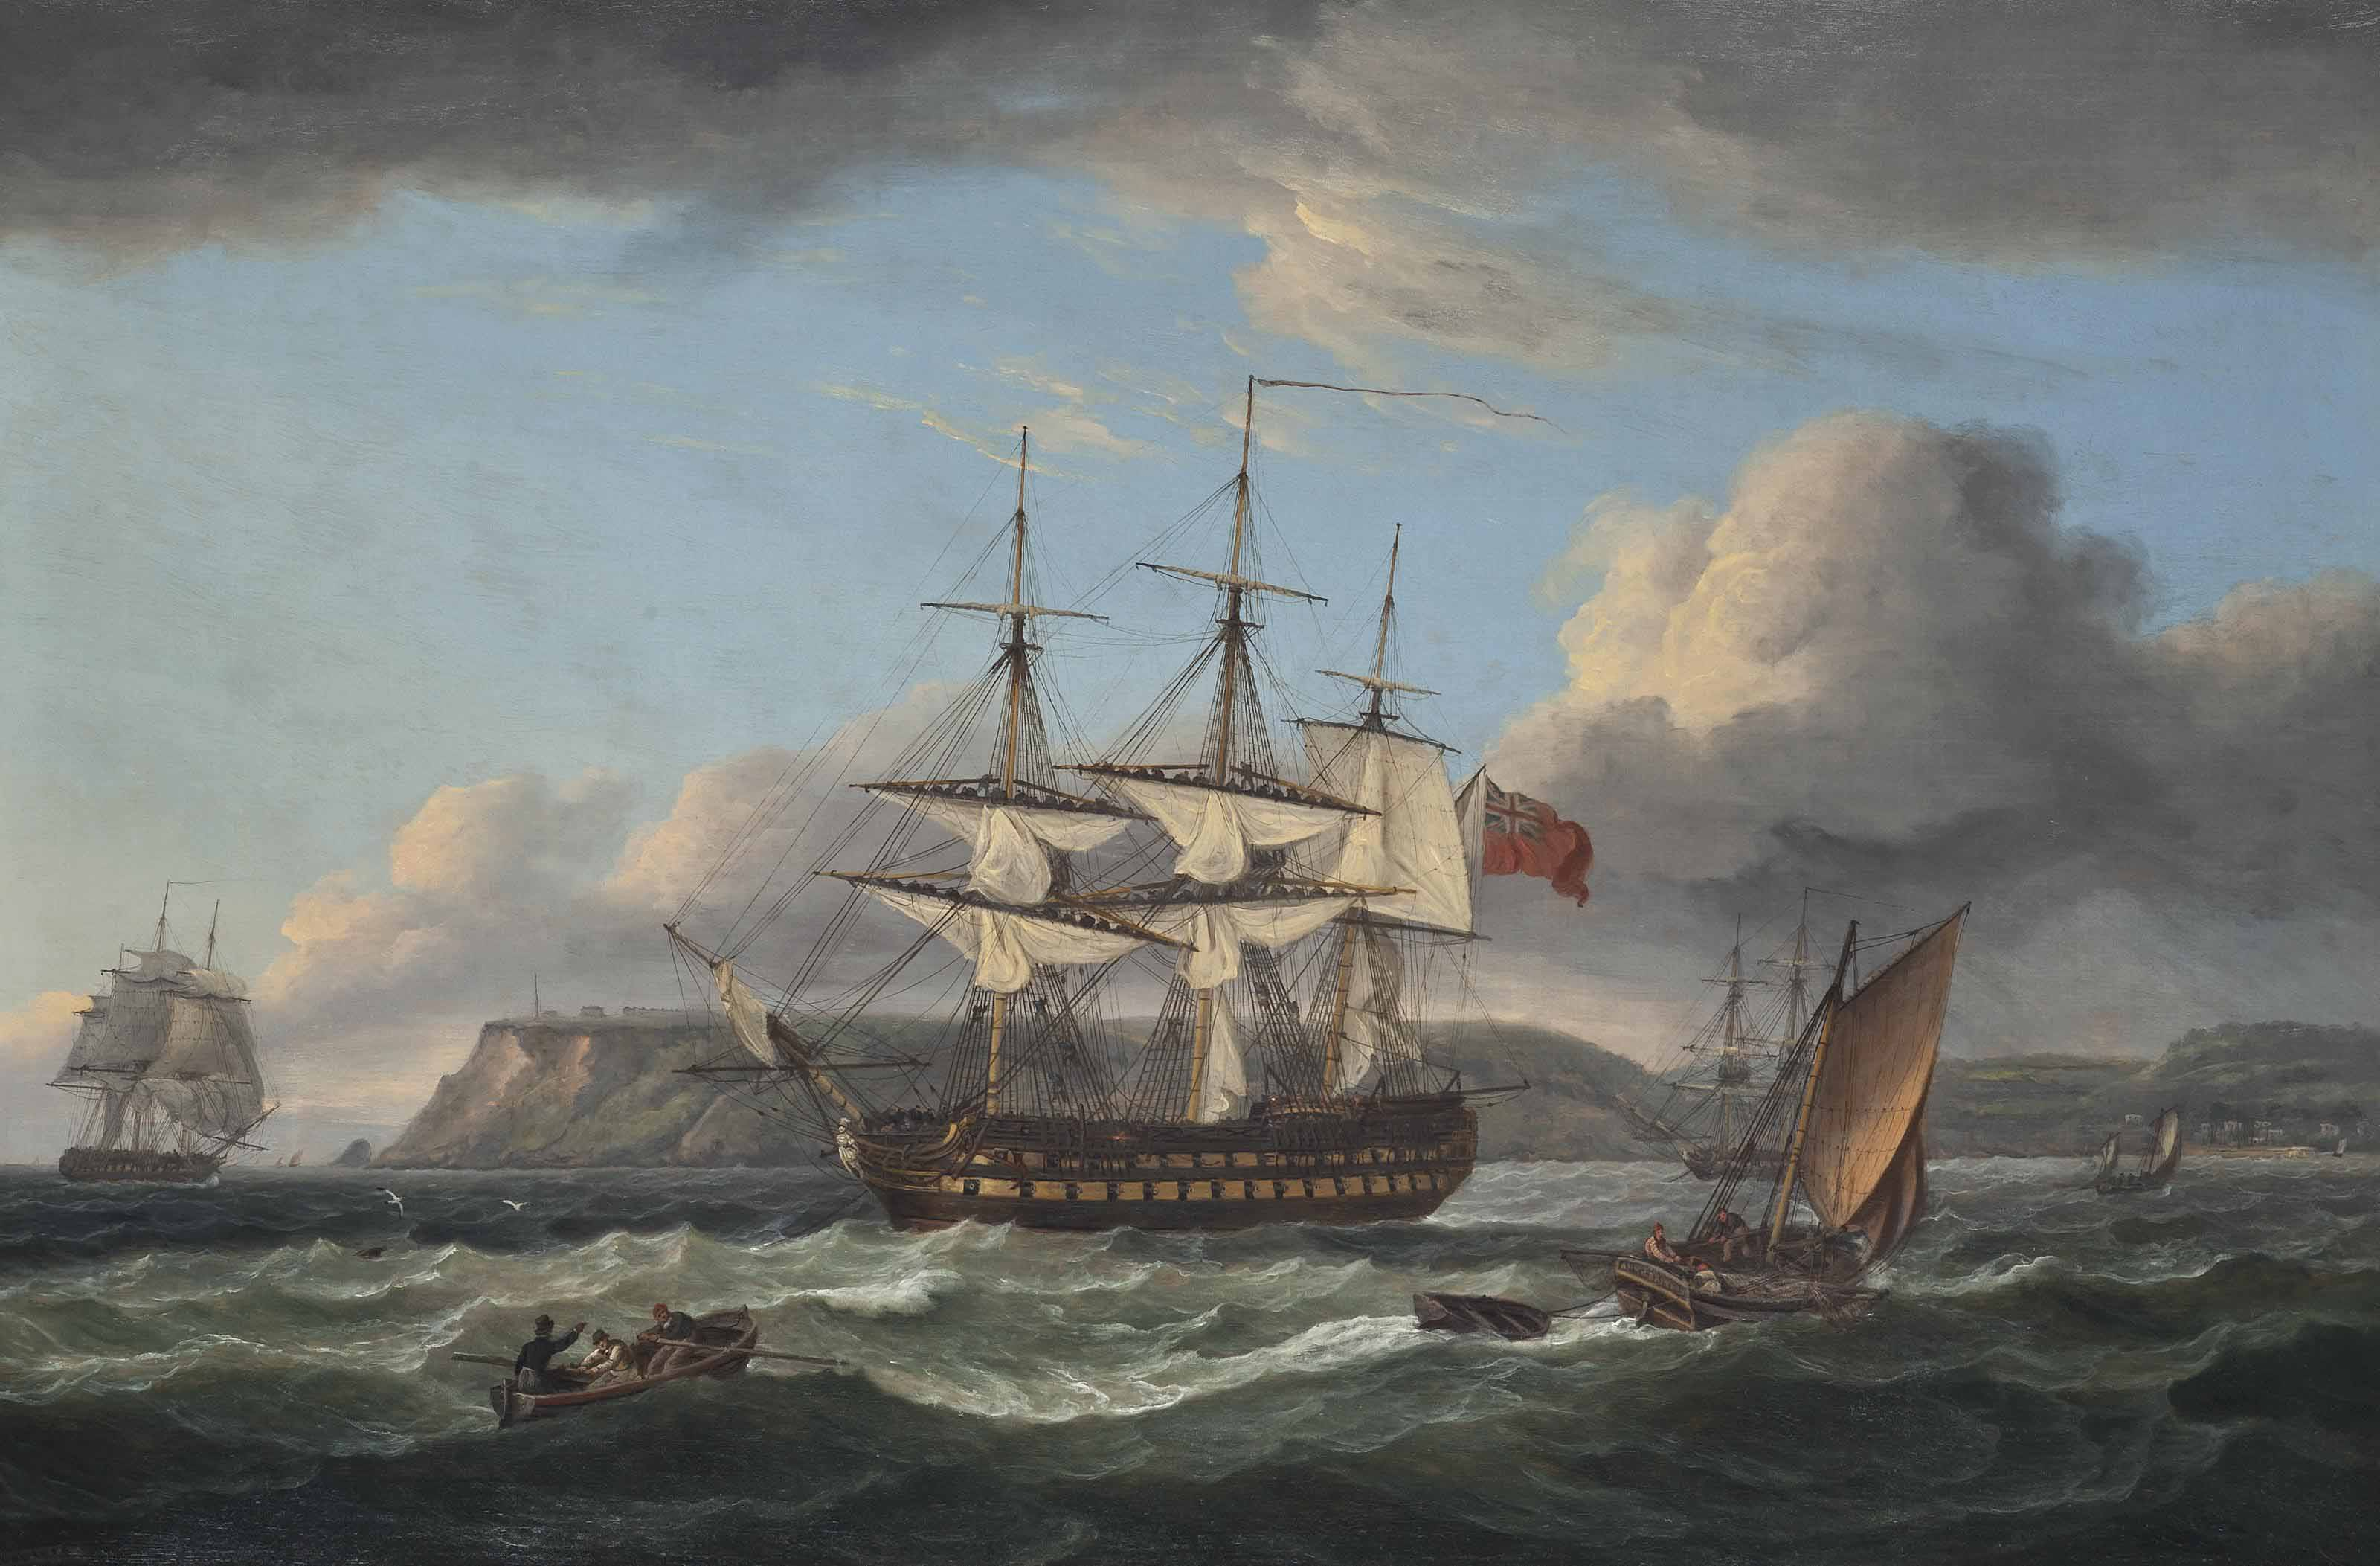 H.M.S. Bellerophon making sail out of Torbay with the defeated Emperor Napoleon aboard, 26th July 1815